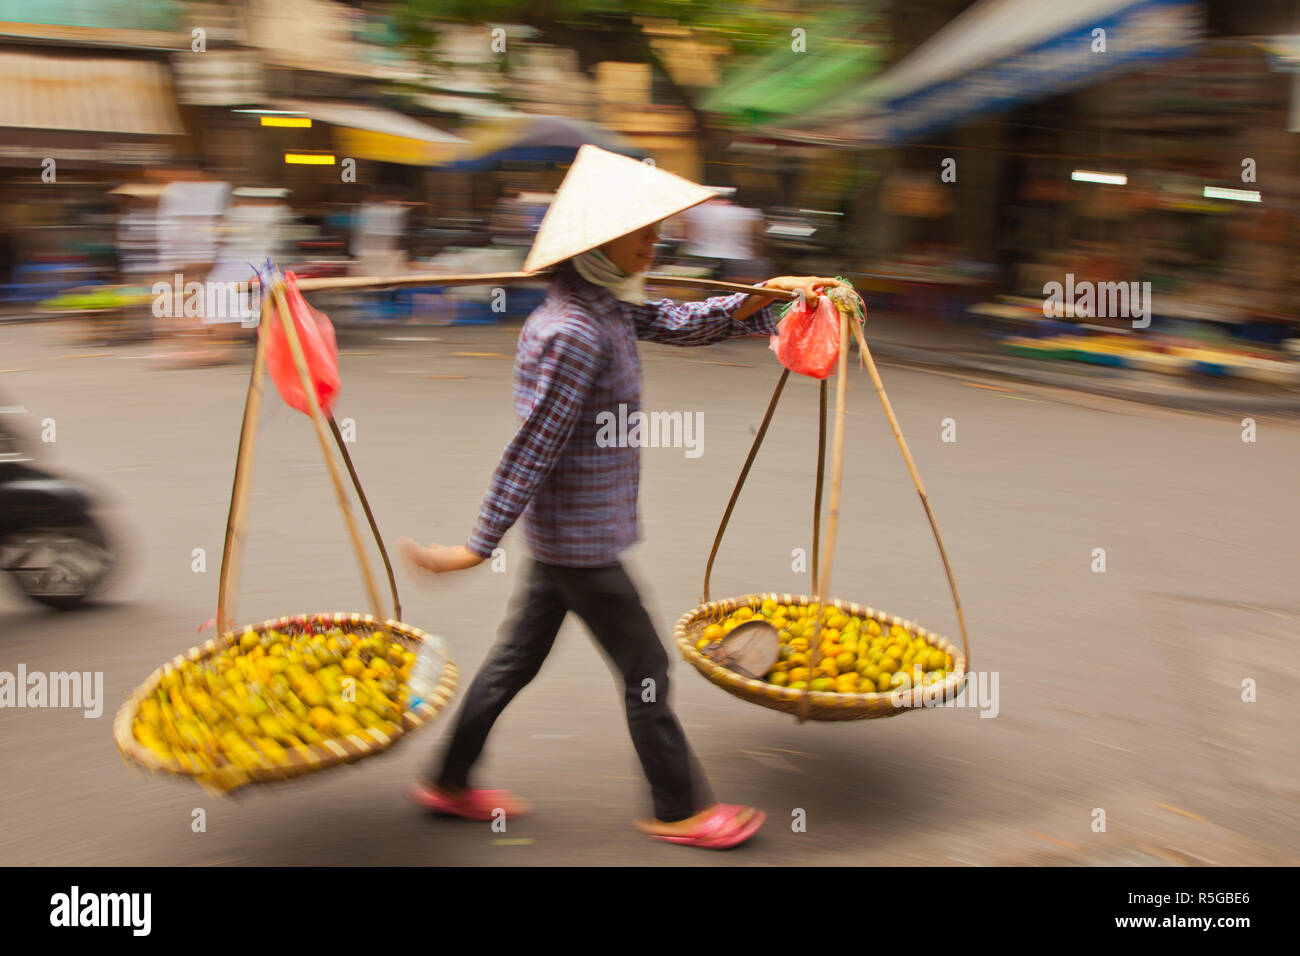 Woman street vendor, Old Quarter, Hanoi, Vietnam - Stock Image